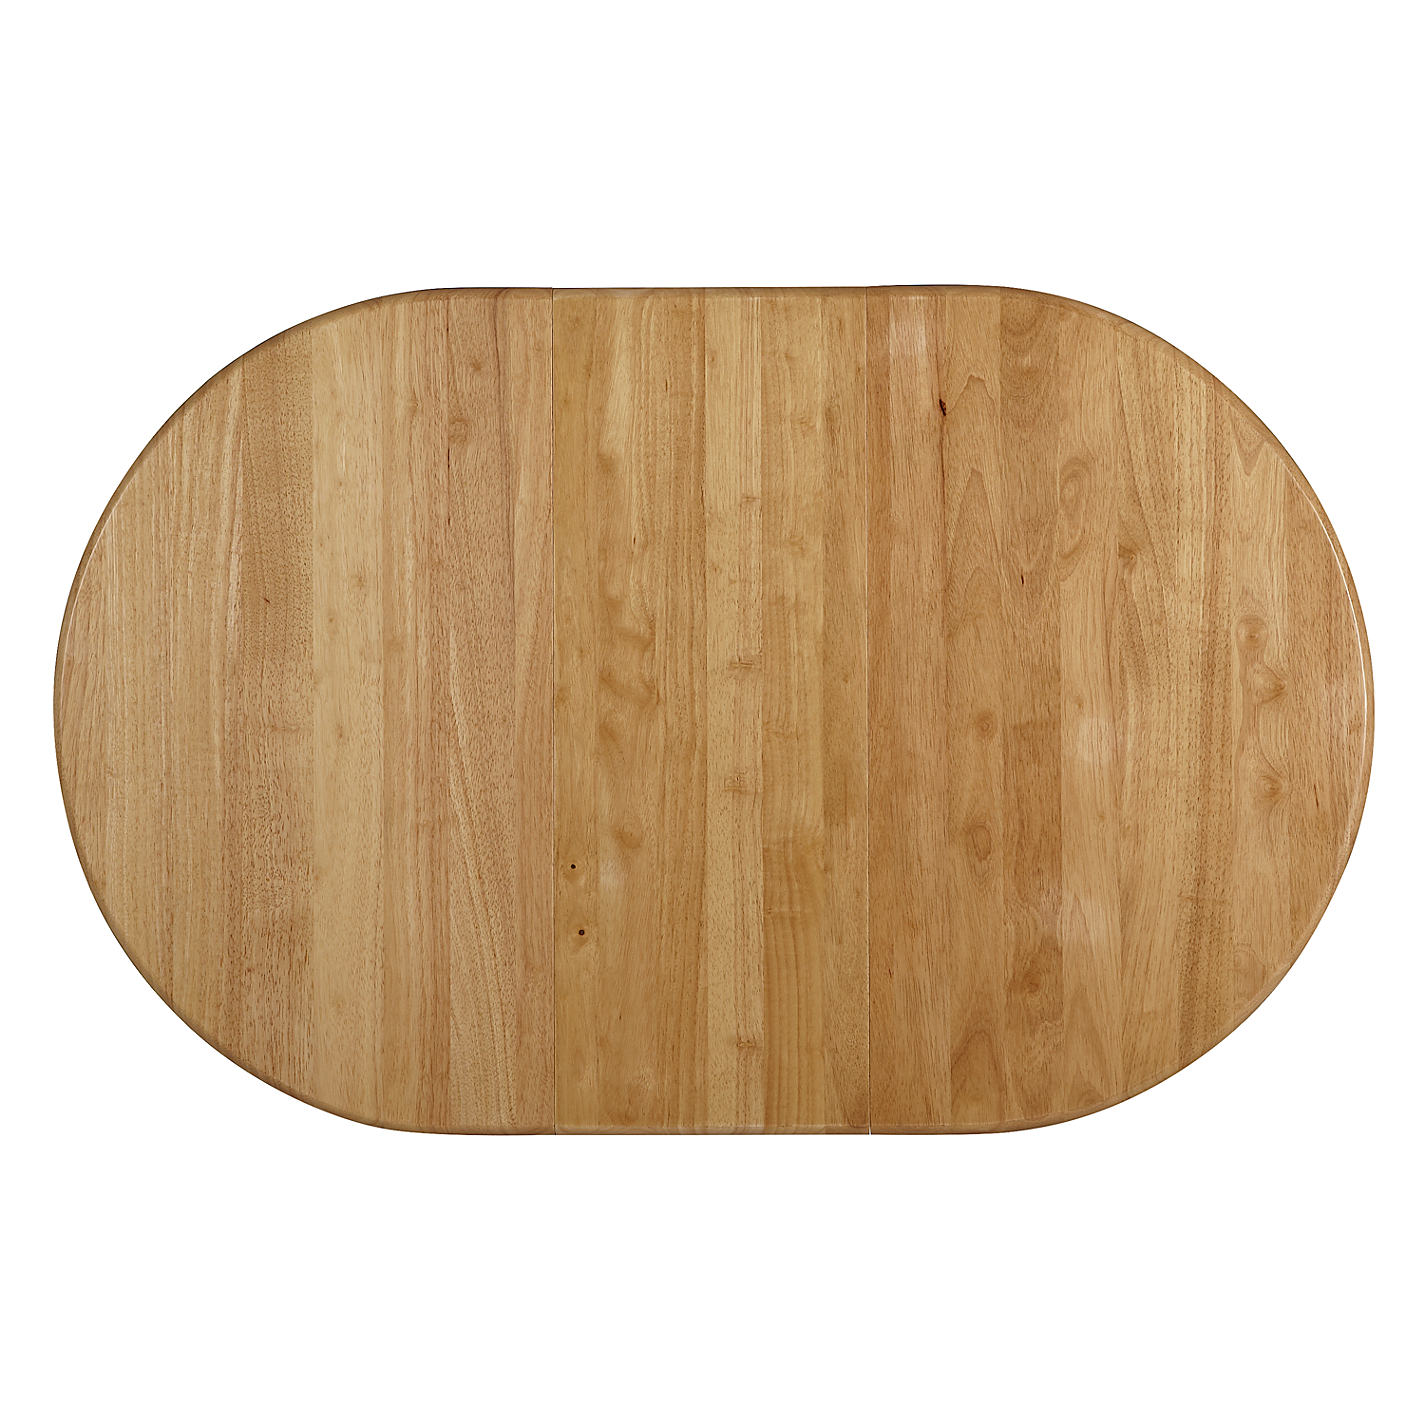 Table leaf rectangular table rectangle table leaf oval table leaf - Buy John Lewis Butterfly Drop Leaf Folding Dining Table And Four Chairs Online At Johnlewis